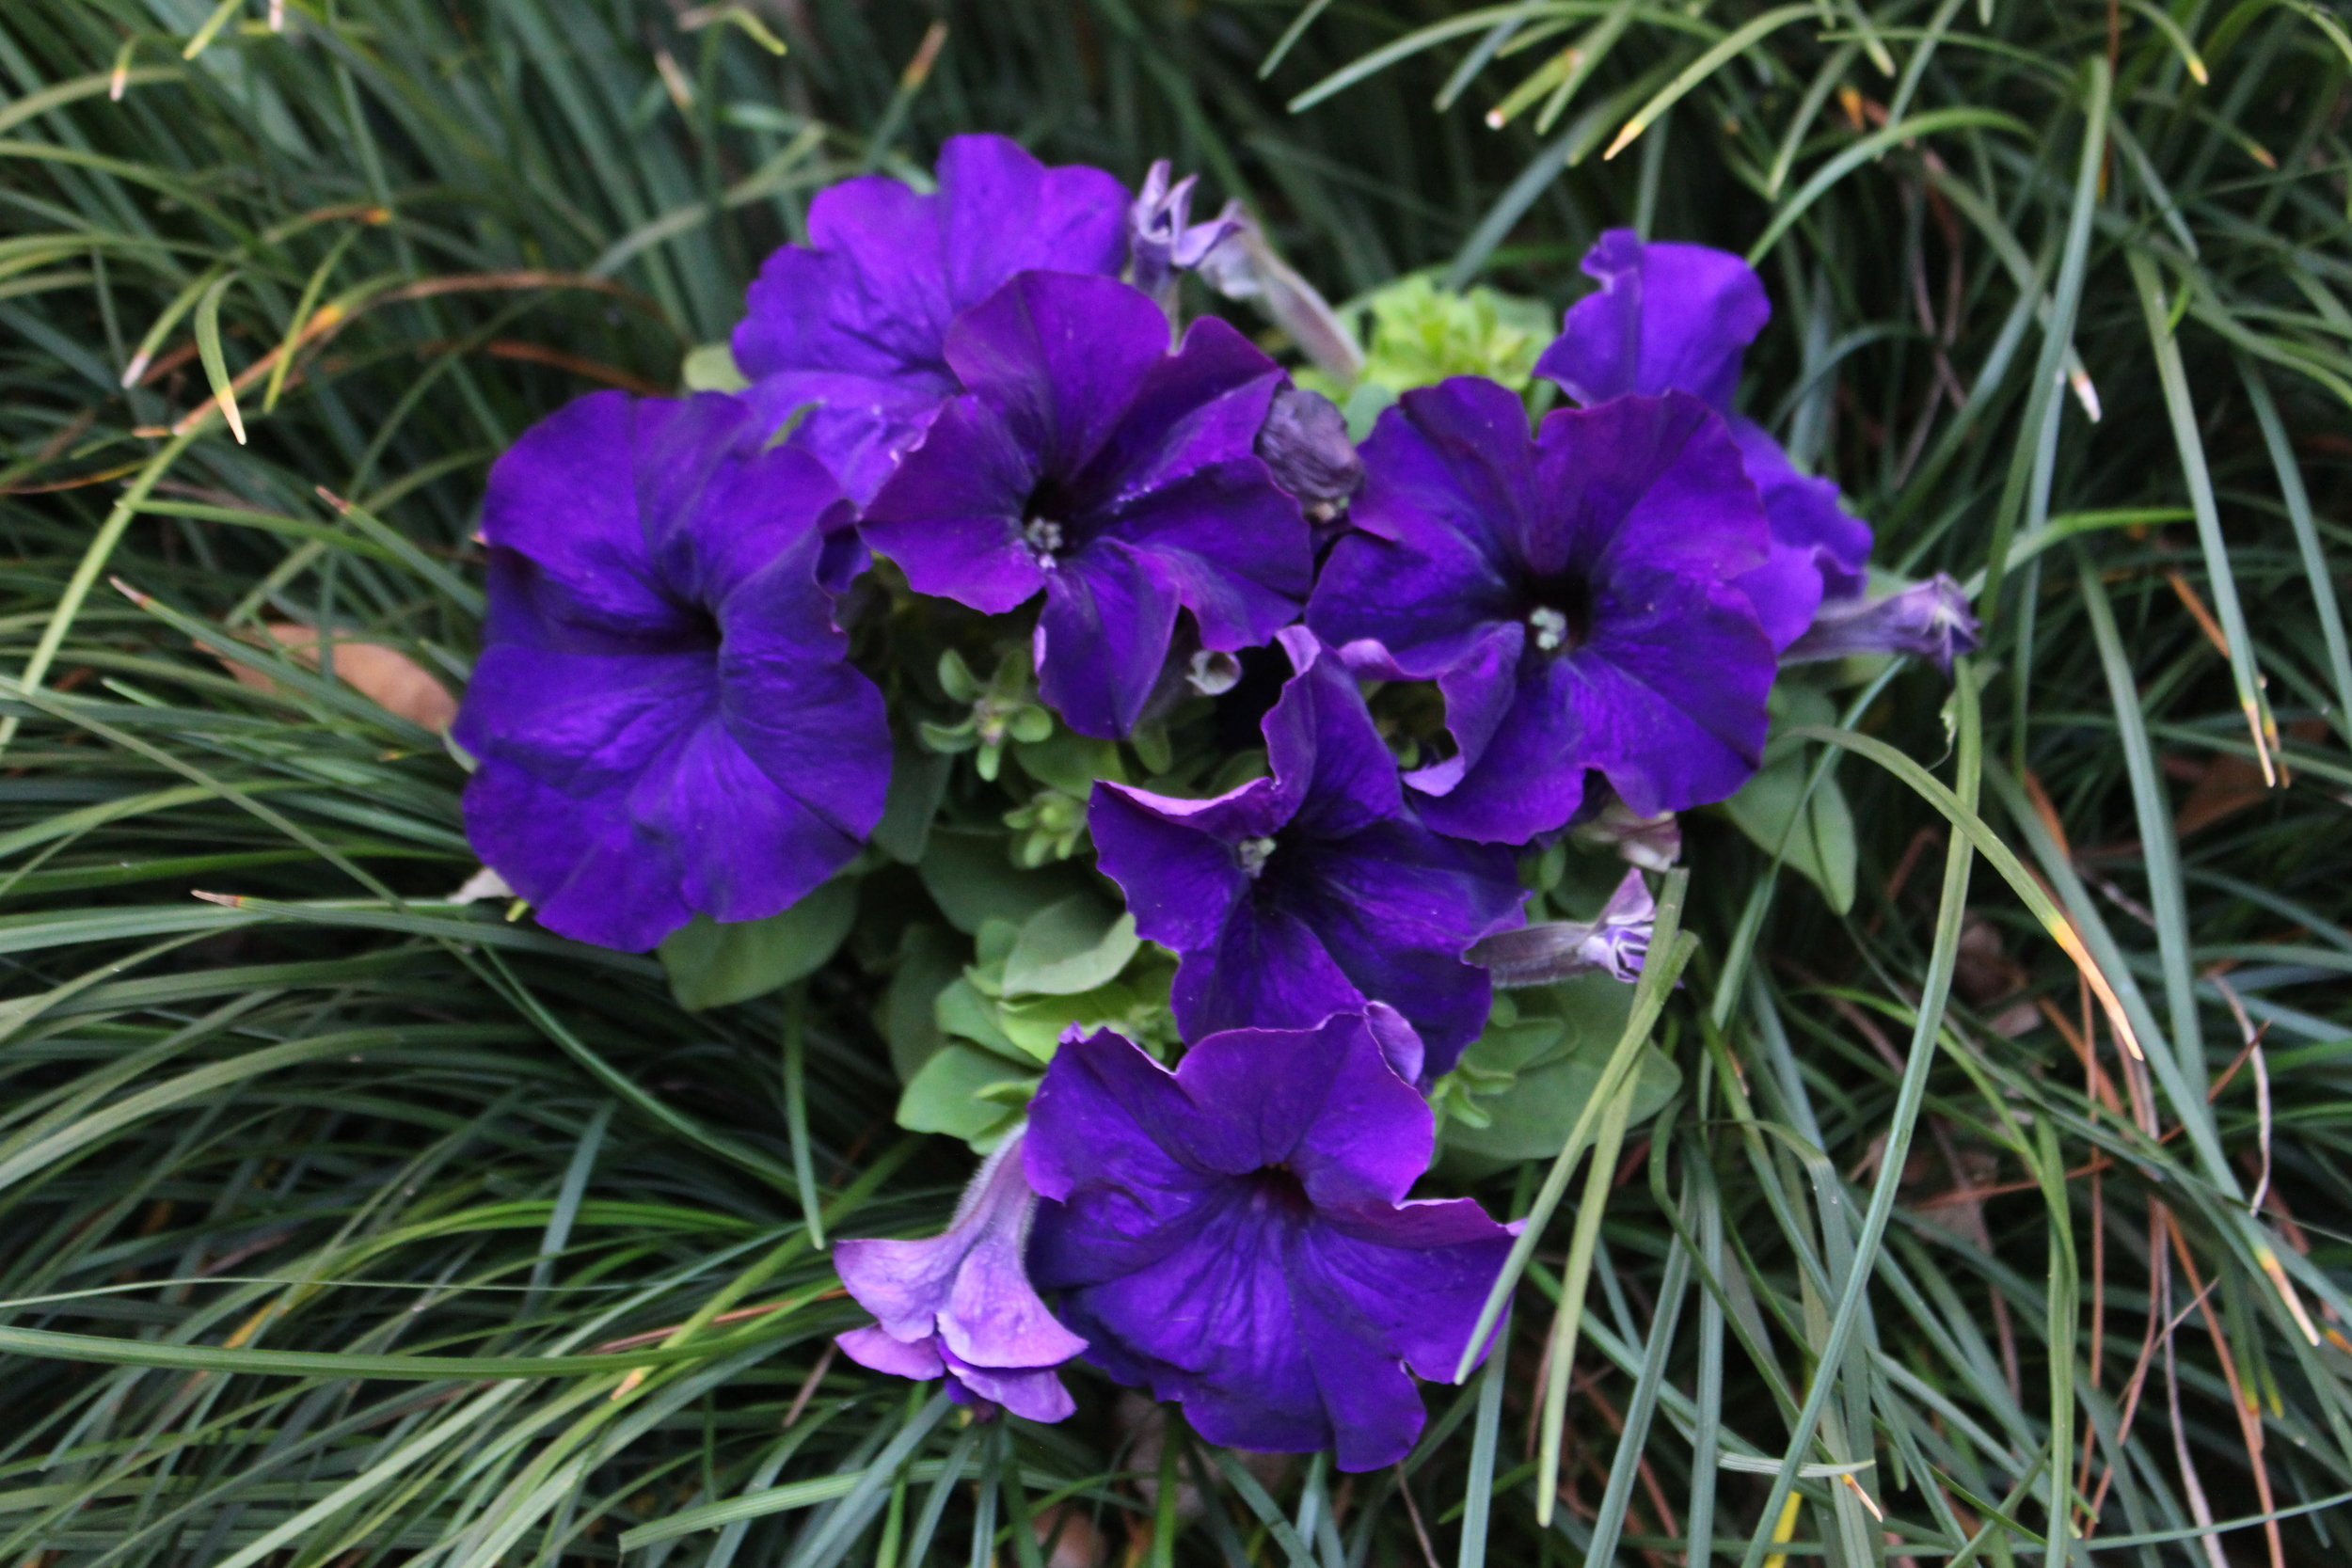 Petunias are an excellent choice for fall color. They are fast growers and relentless bloomers as long as they are planted and cared for properly. Petunias require a well-drained location and plenty of sun. They will bloom right up till frost.